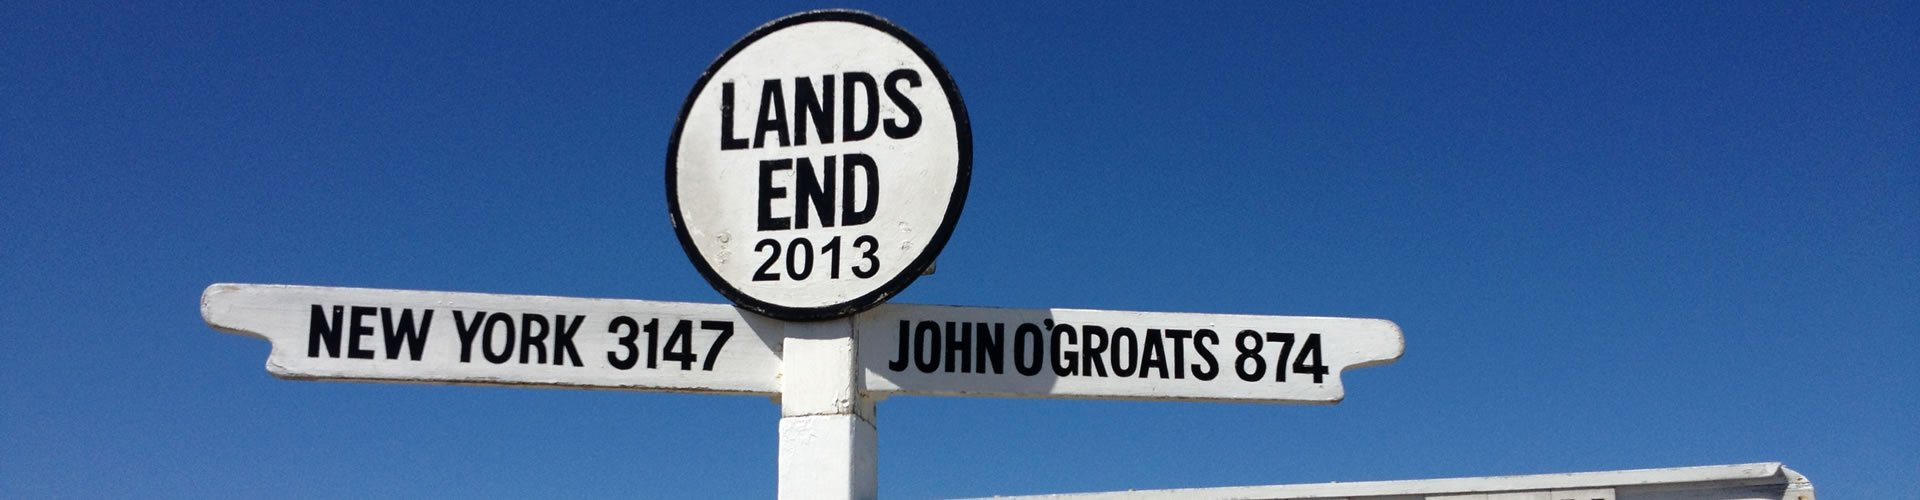 lejog lands end john o'groats fully supported guided managed